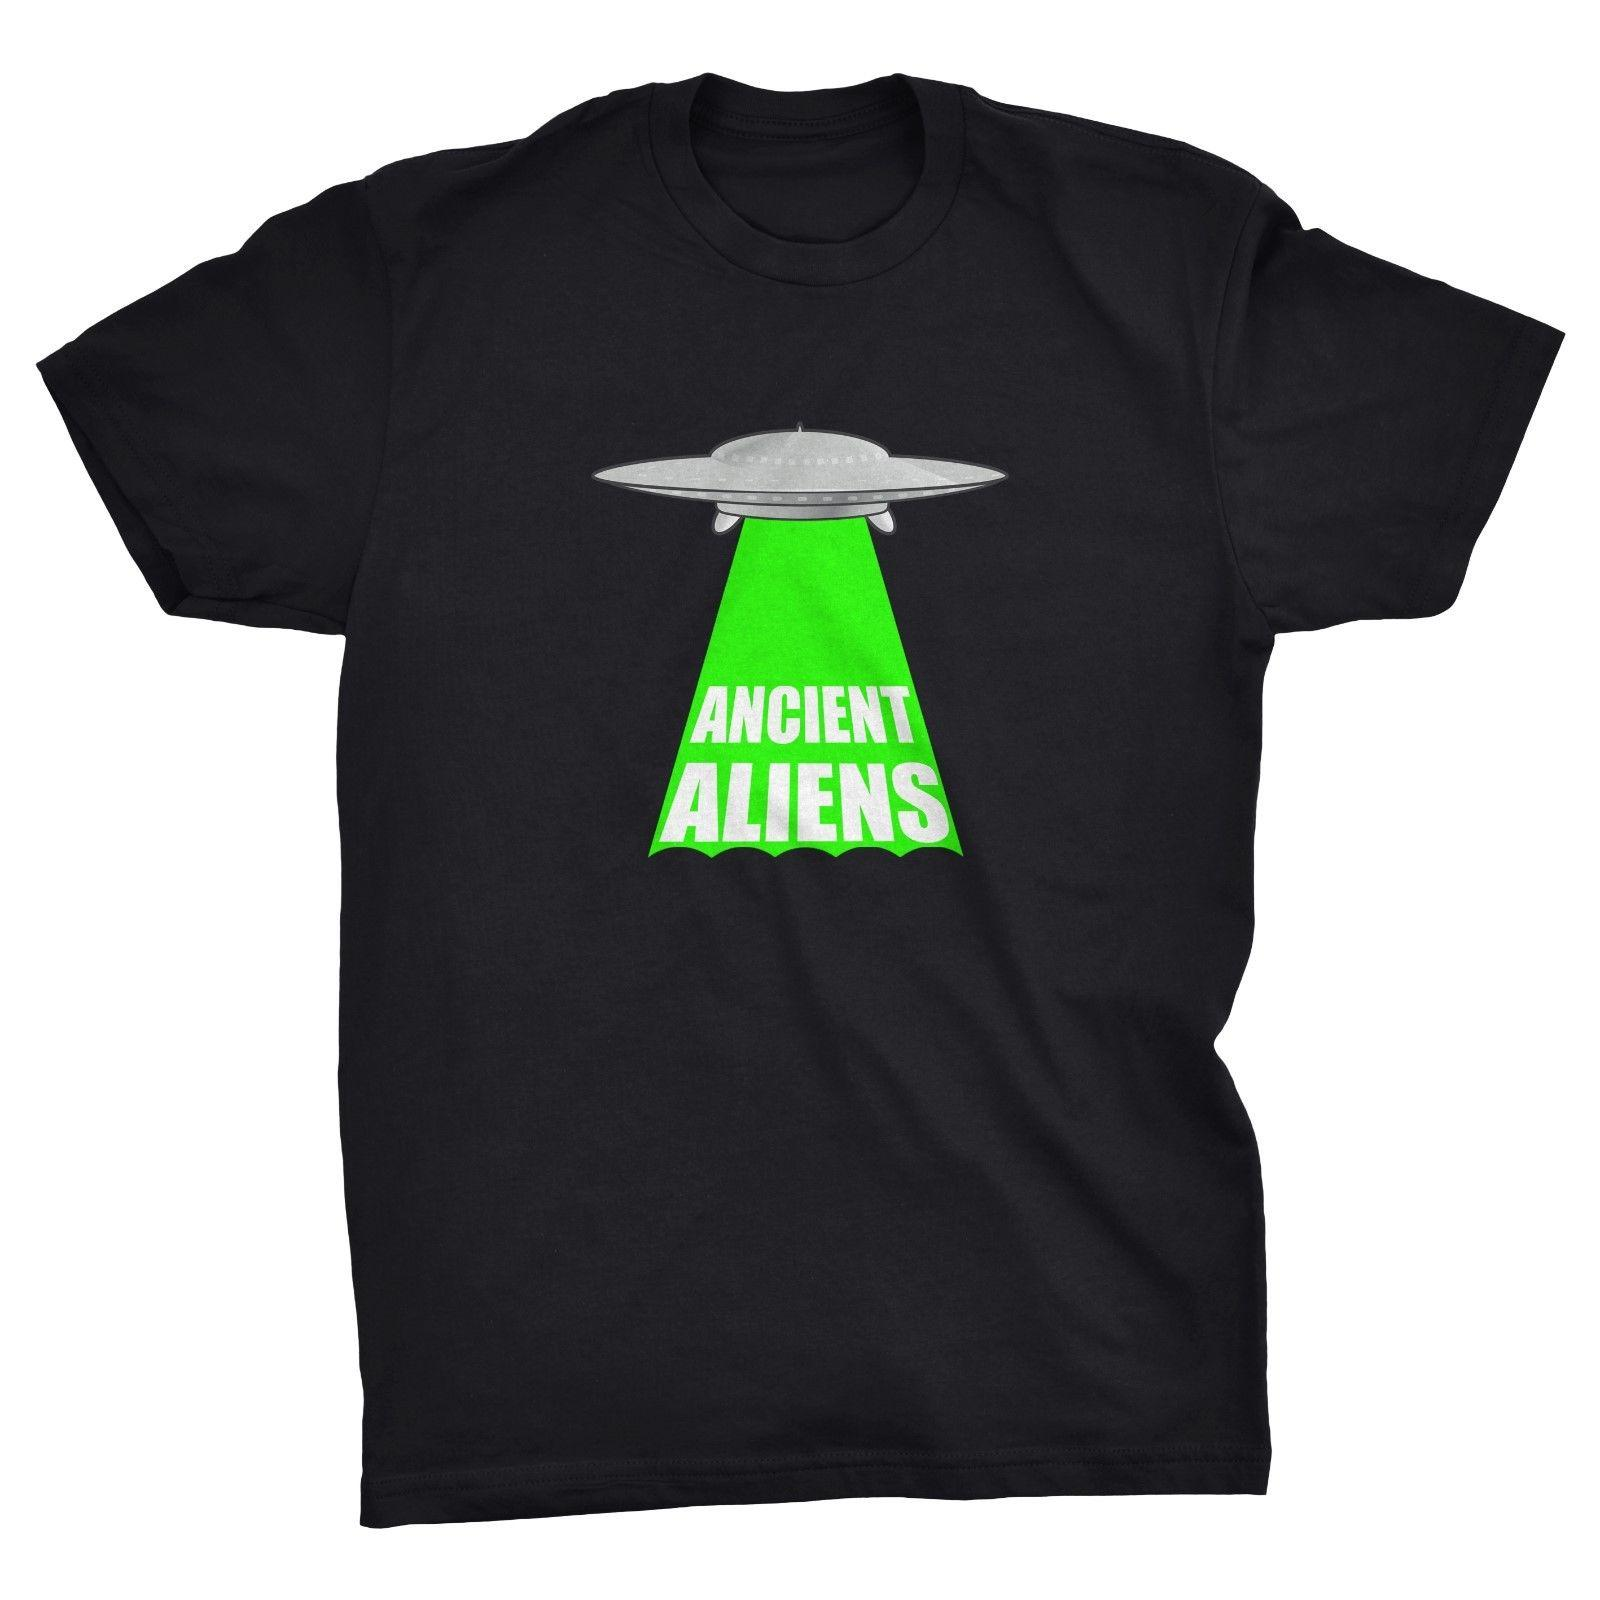 T-Shirt Ancient Aliens, Ufo, Tsoukalos, História, Flying Saucer, Meme, Navio legal retro homens camisa do orgulho t unisex casuais